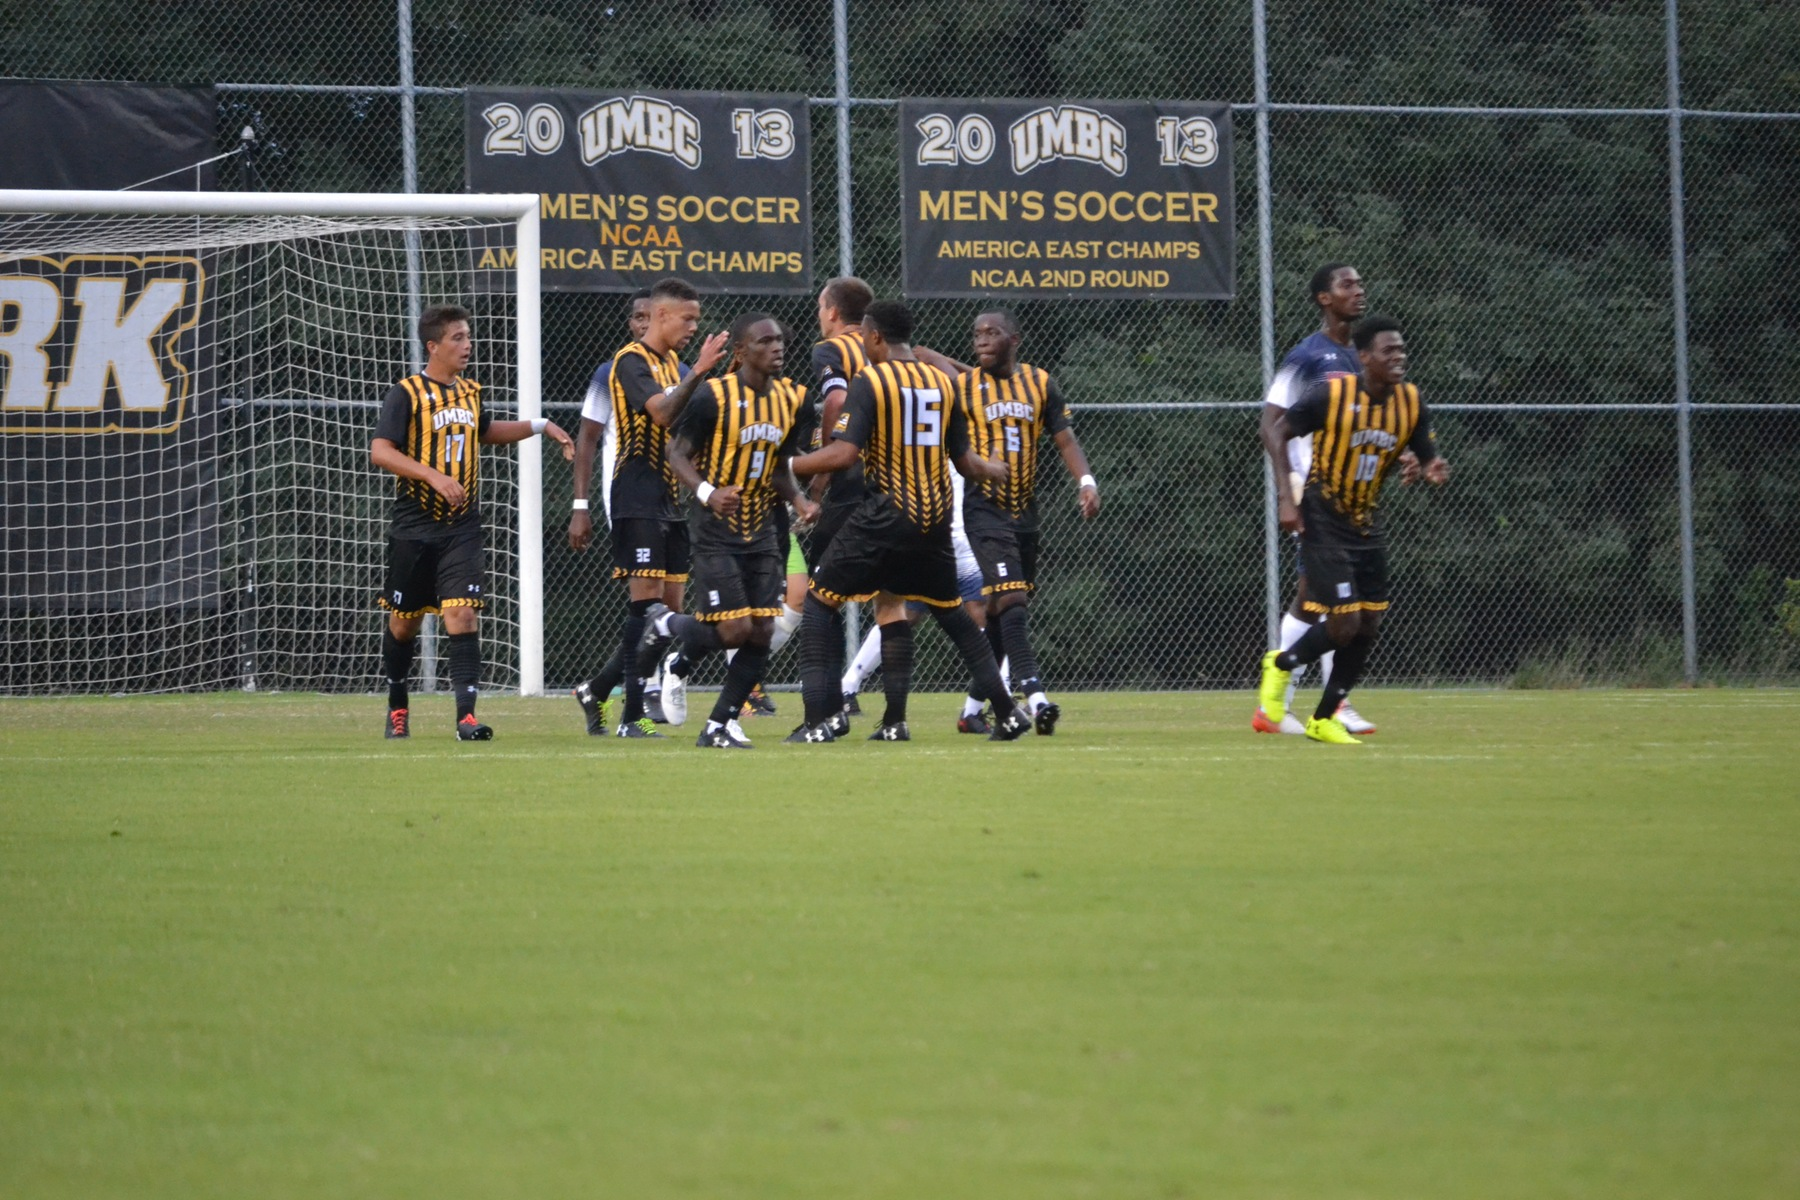 Hauck Nets Game Winner as UMBC Men's Soccer Downs Monmouth, 2-1 on Saturday